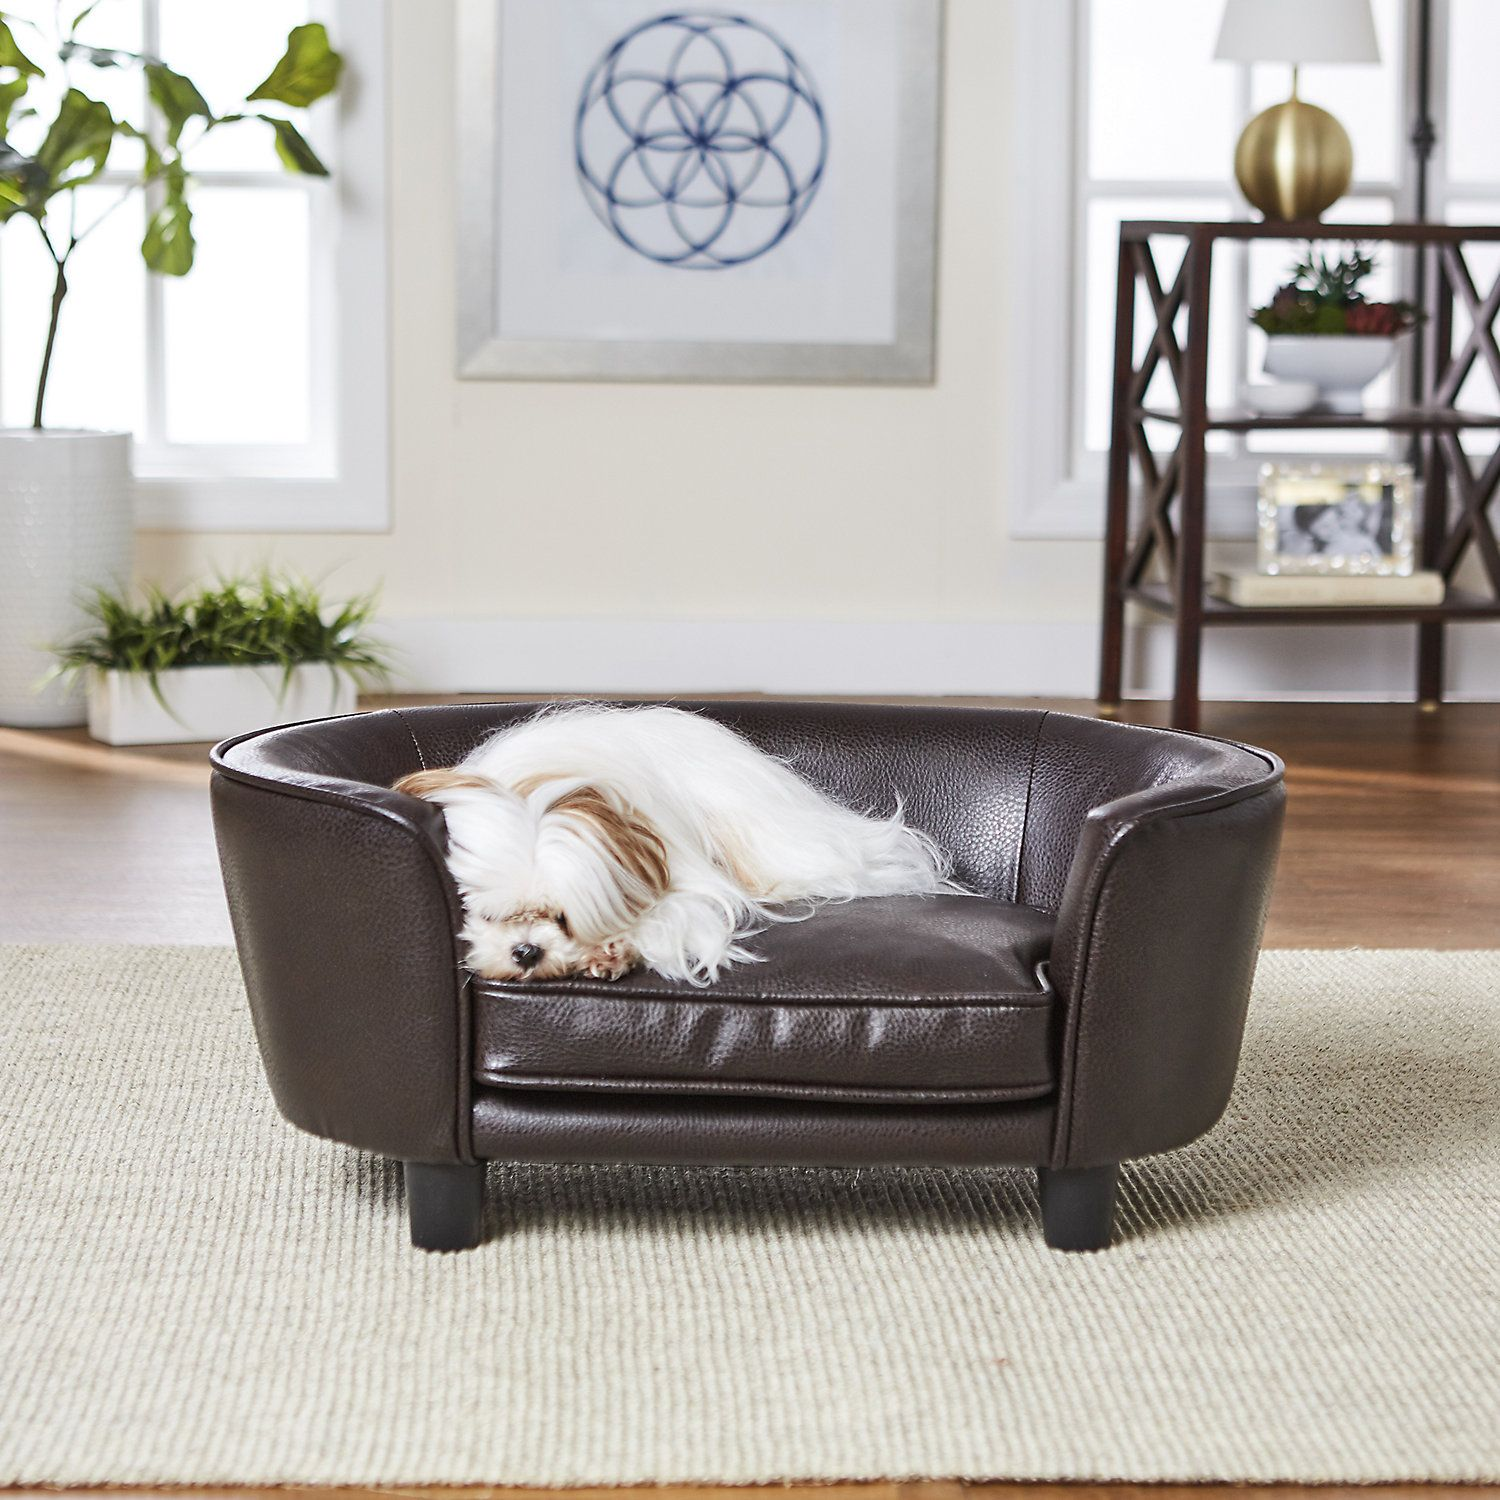 Enchanted Home Pet Pebble Brown Coco Pet Sofa 26 5 L X 16 W X 11 H Dog Bed Enchanted Home Bed